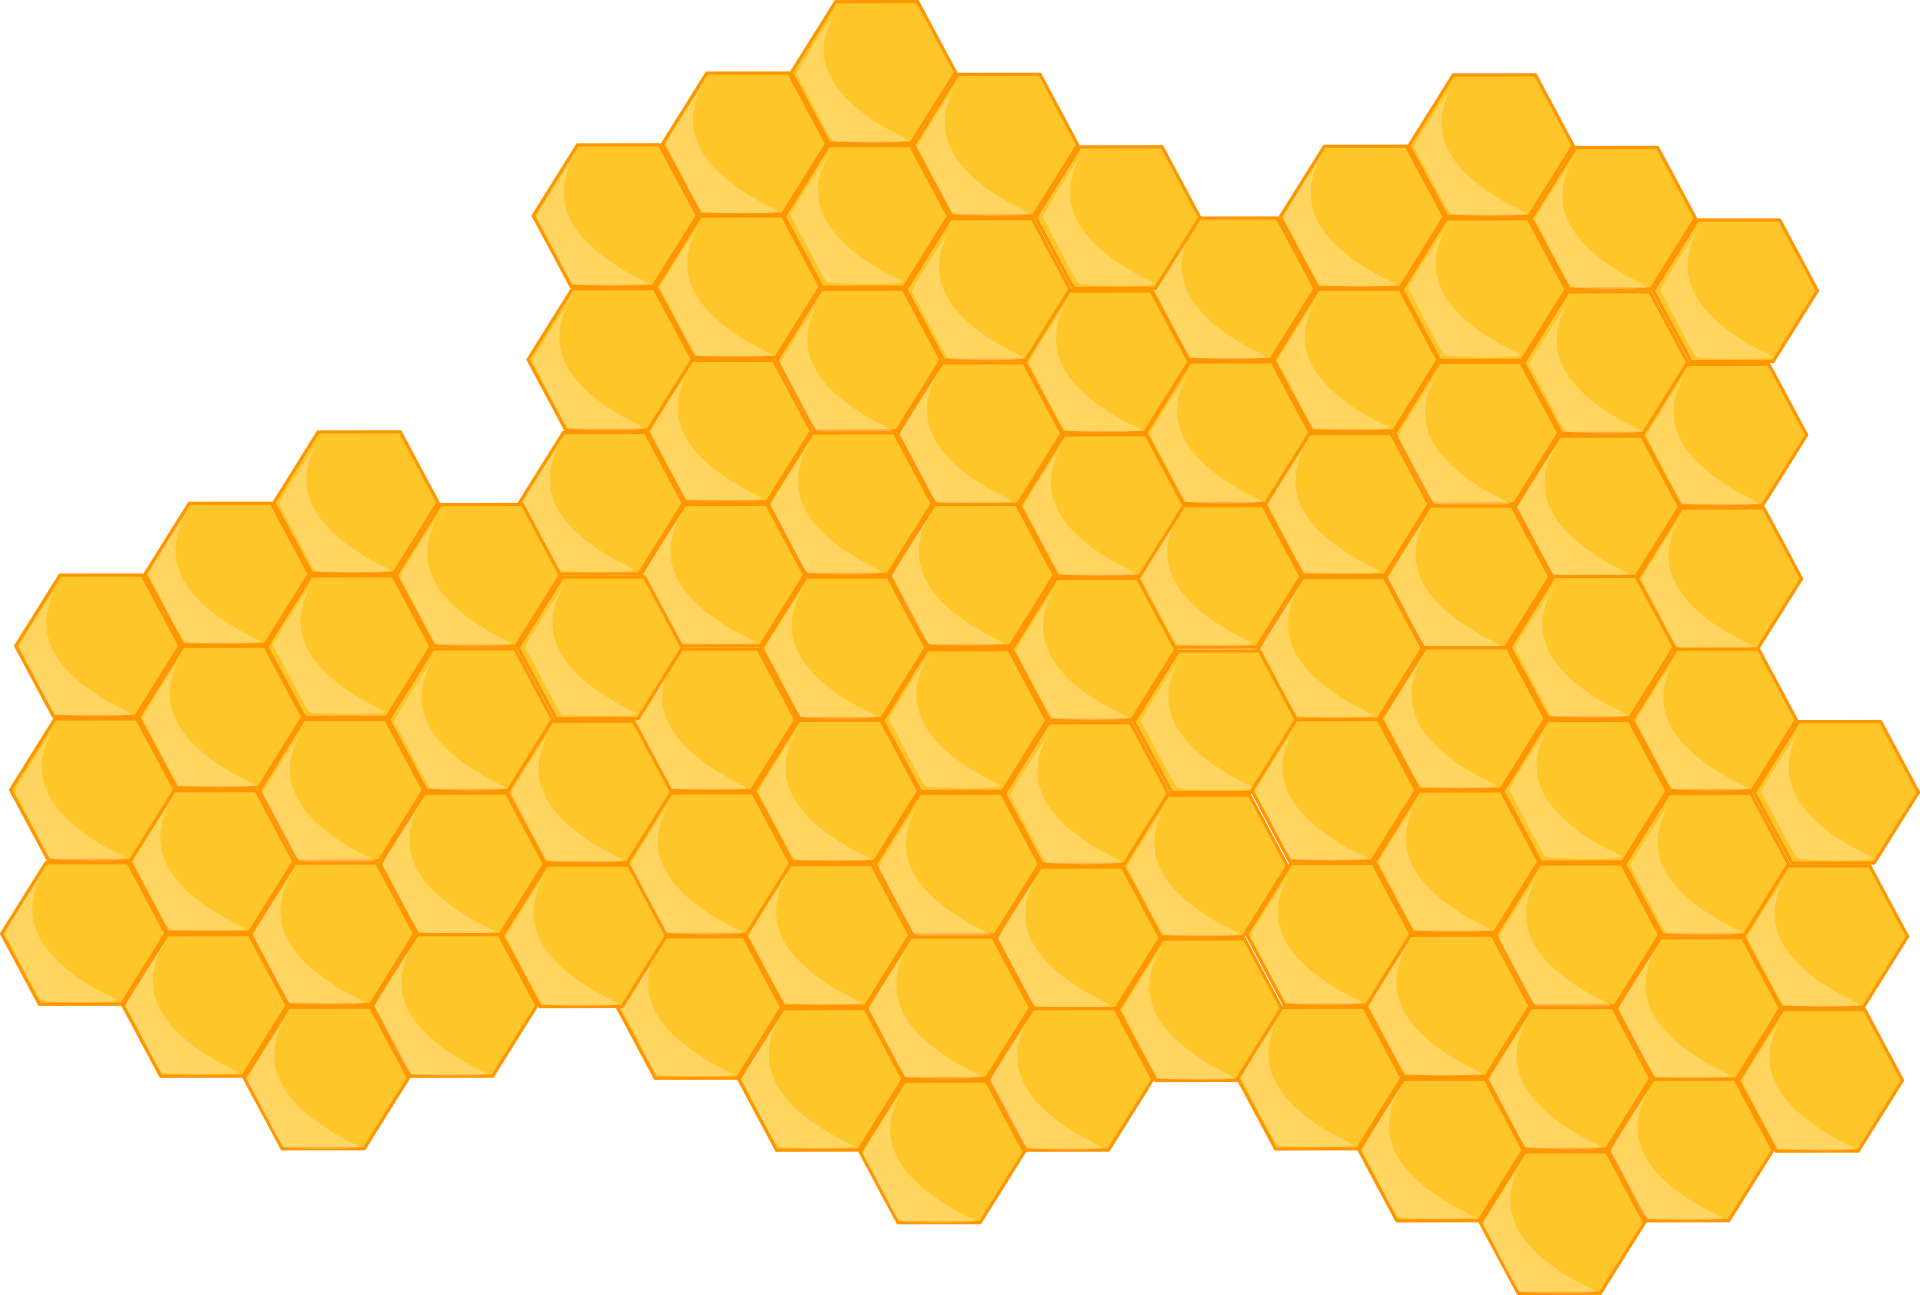 Apple in honey clipart vector free stock Beehive Honeycomb Clip art - honey 1920*1295 transprent Png Free ... vector free stock